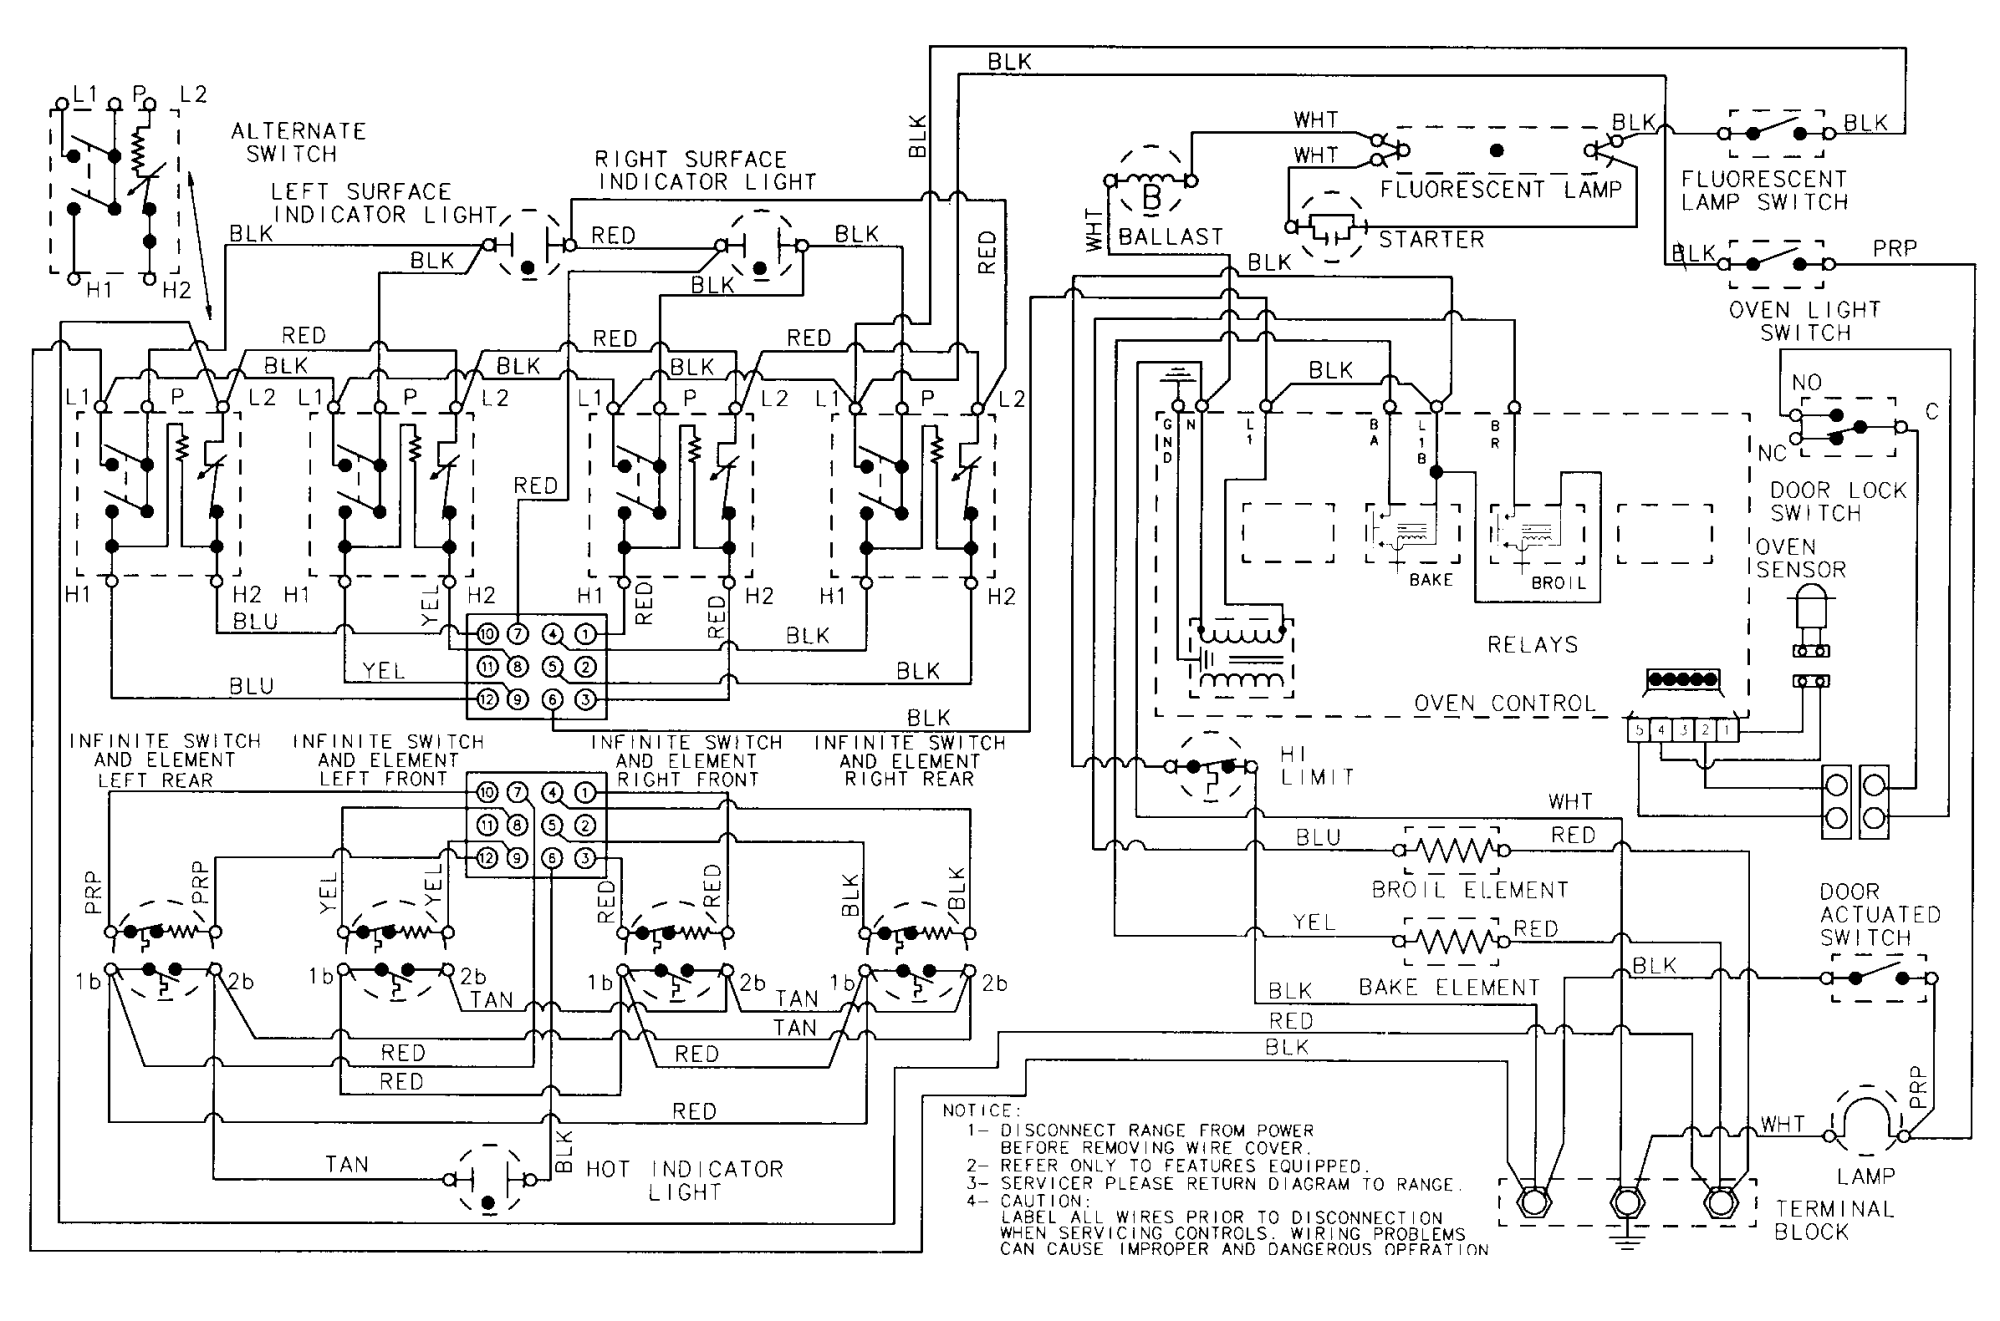 hight resolution of tappan dishwasher wiring diagram wiring diagram view tappan stove wiring diagram